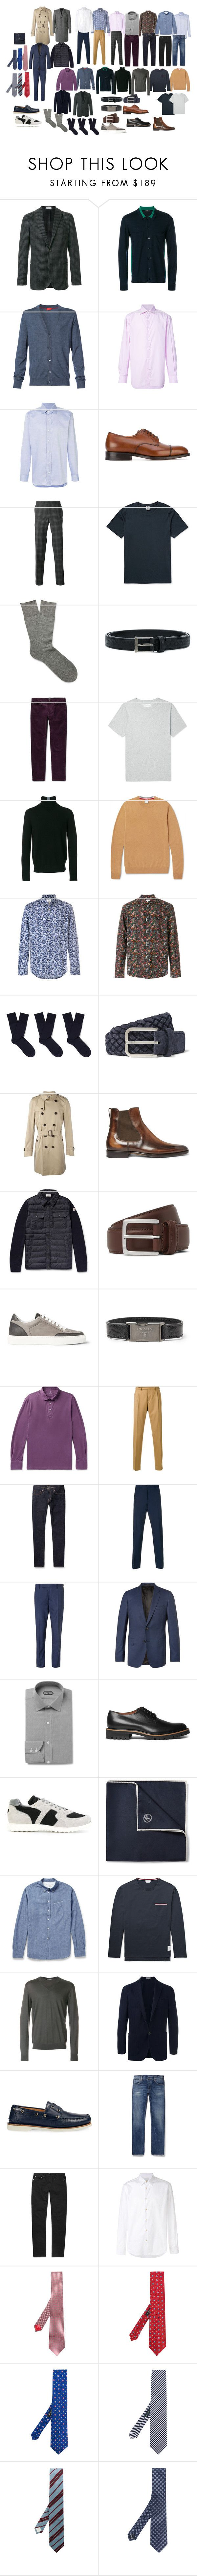 """Базовый мужской гардероб"" by alex9668 on Polyvore featuring Boglioli, Joseph, Isaia, Brioni, Church's, Fashion Clinic, Yves Saint Laurent, Officine Générale, Paul Smith и Loro Piana"